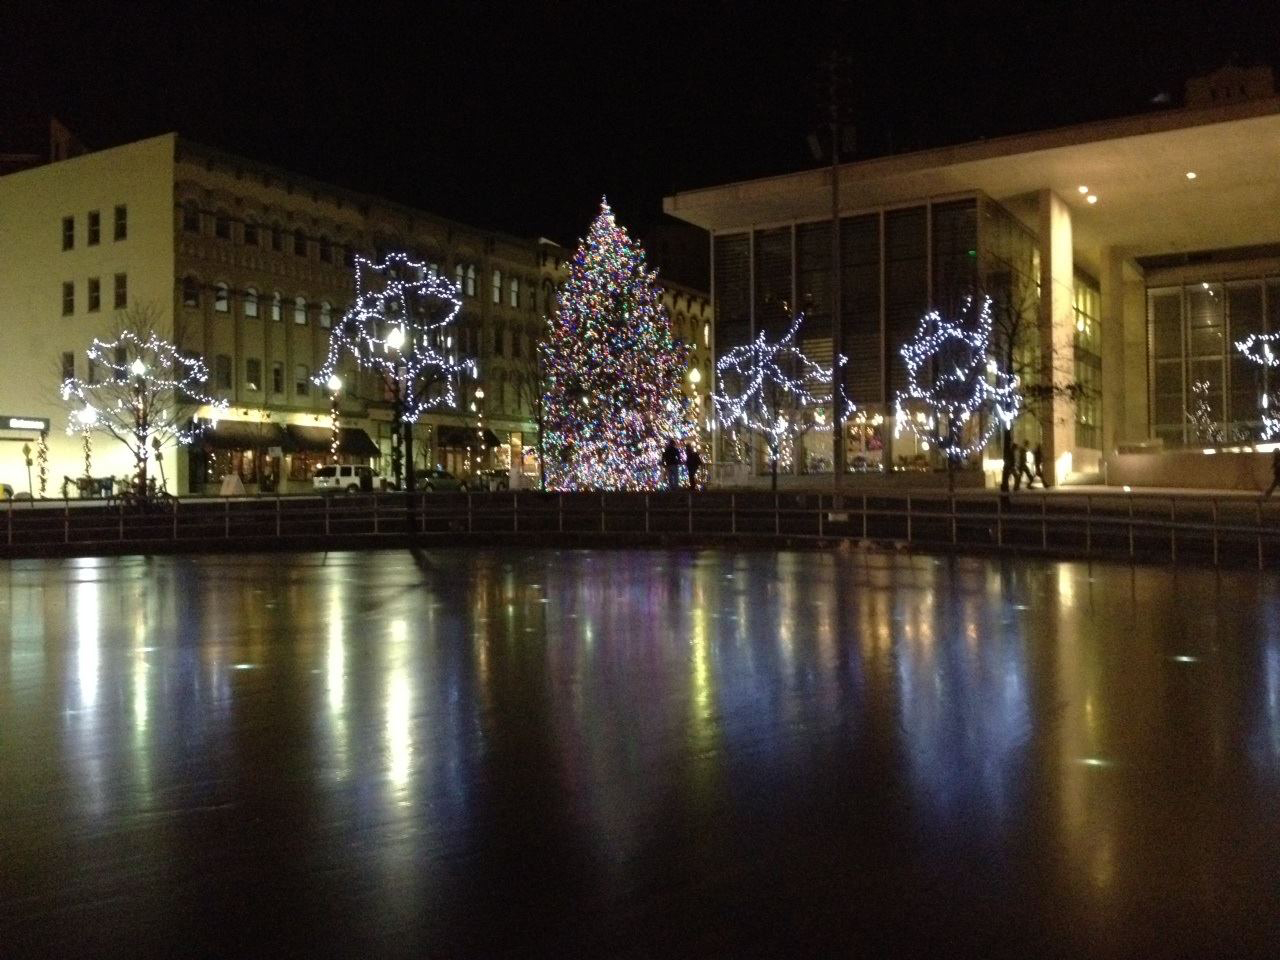 Grand Rapids lights up the holidays with annual Christmas tree lighting ceremony.